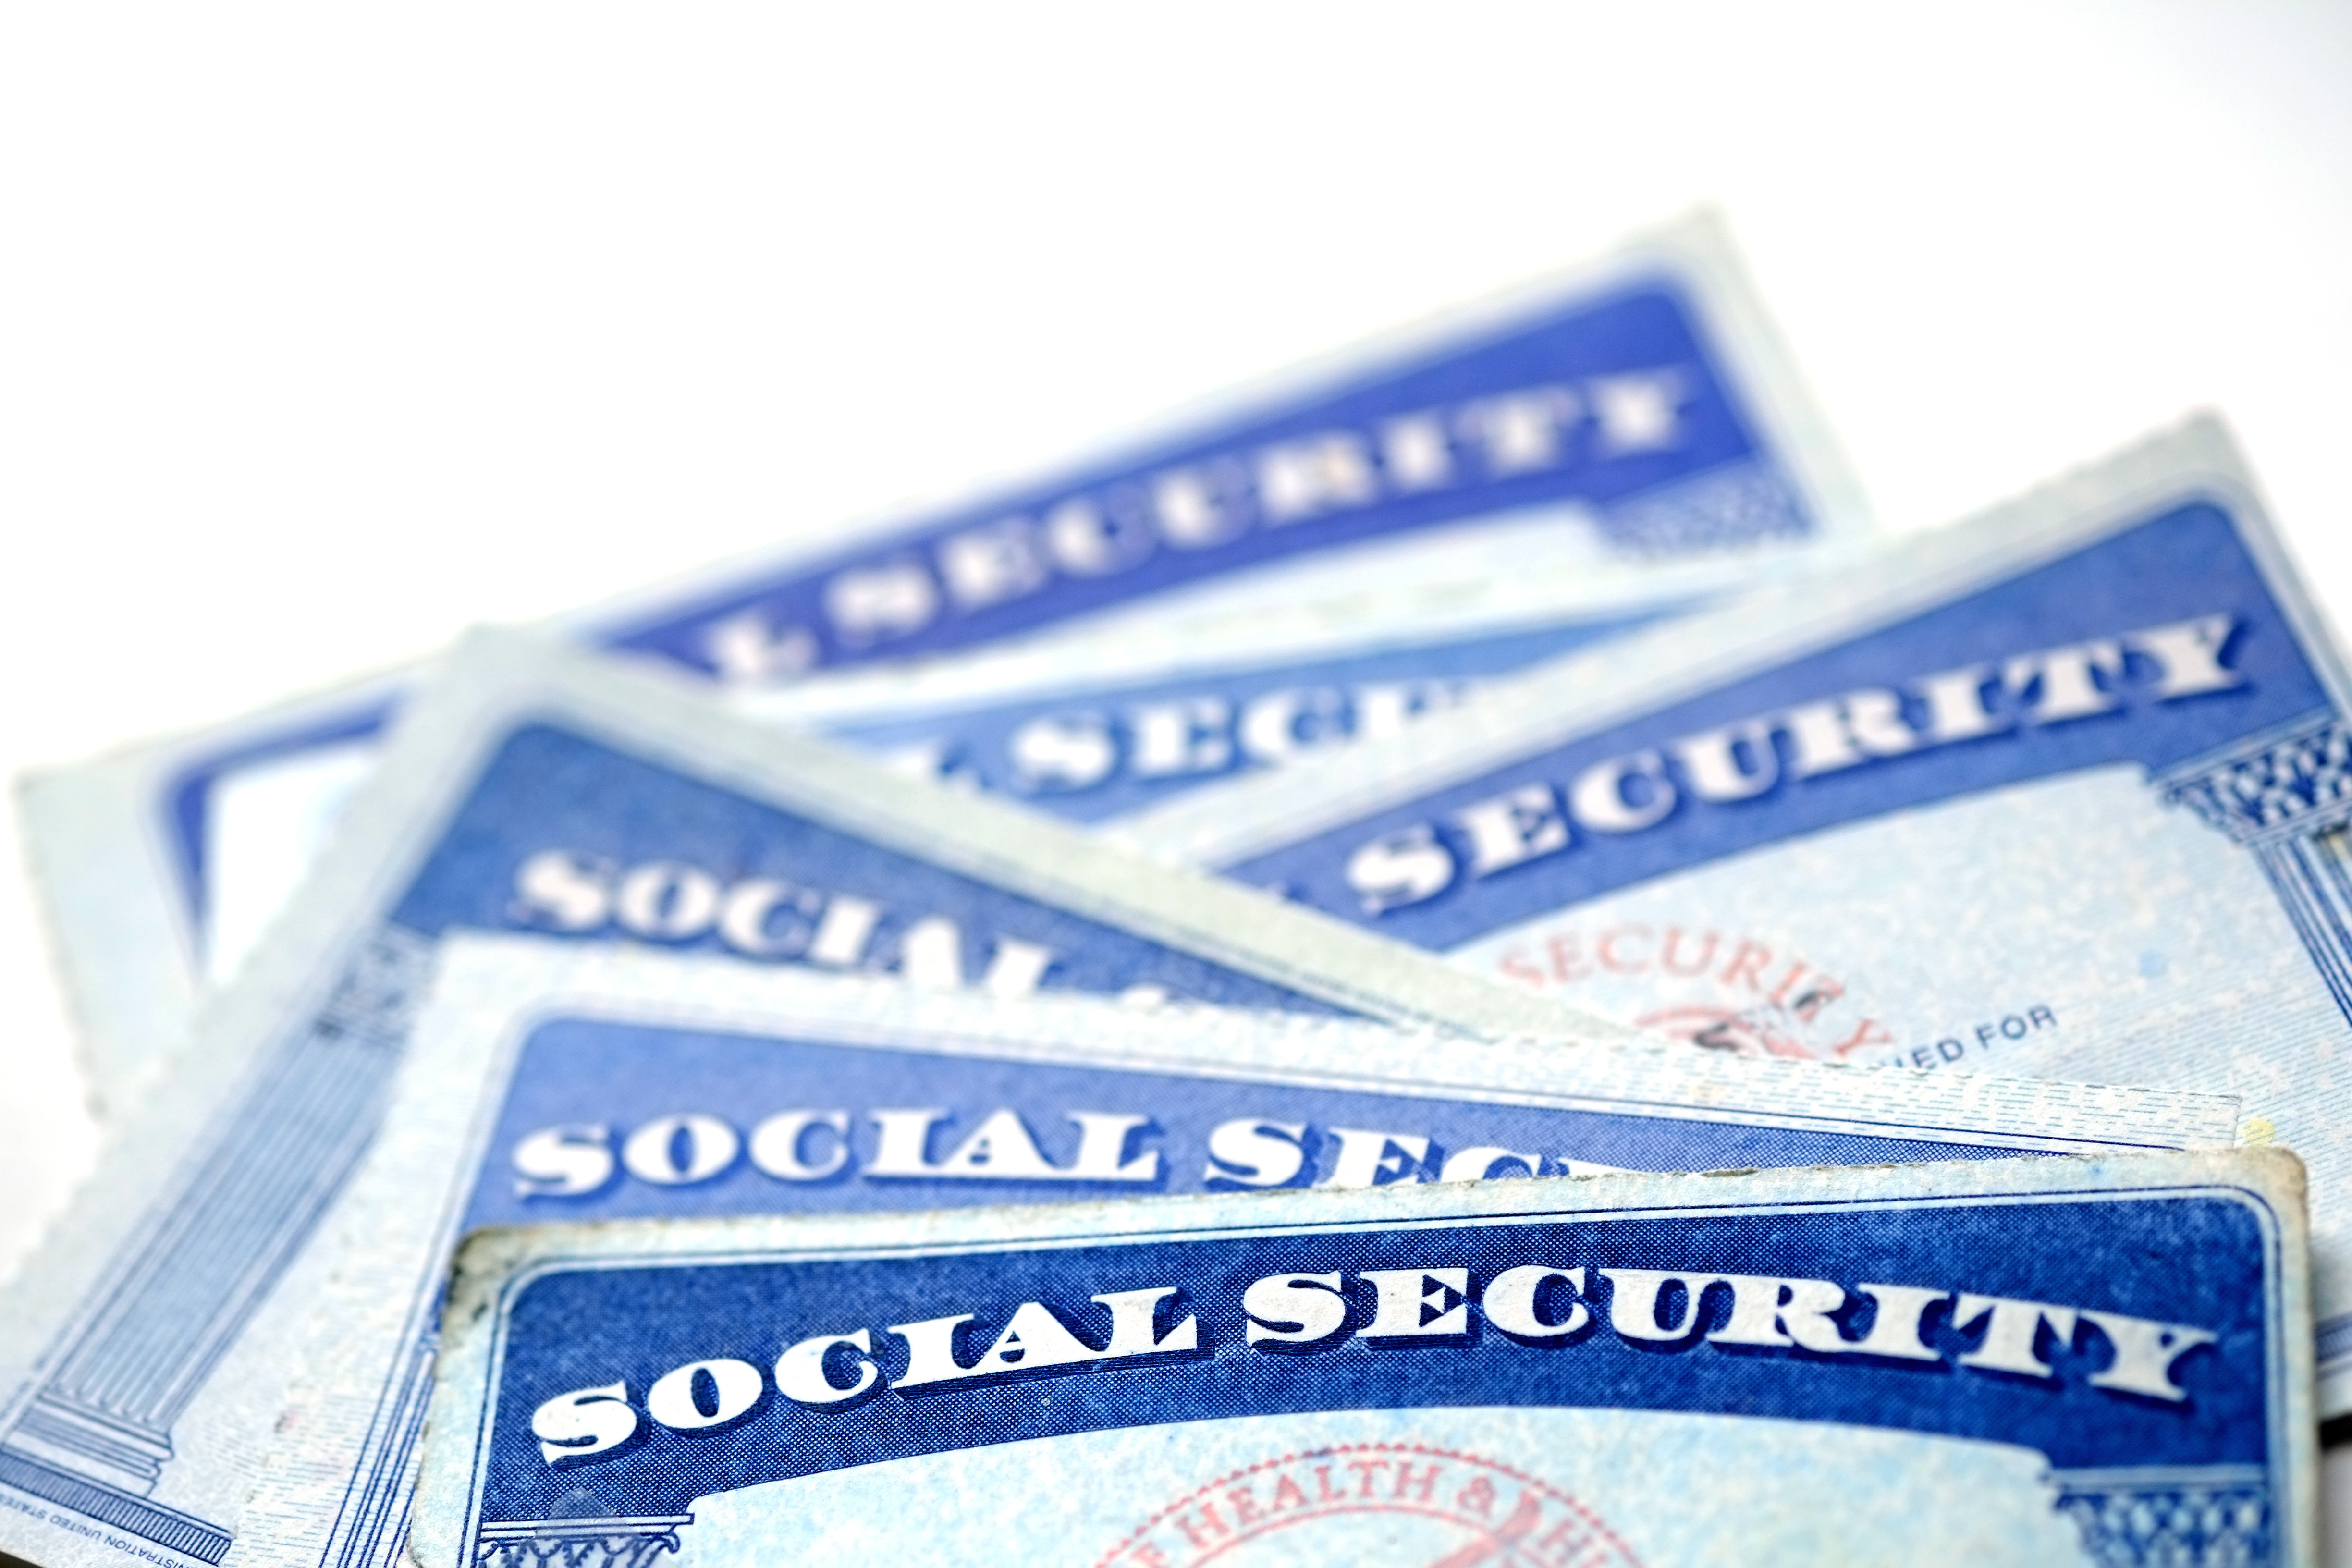 Social Security. Shutterstock